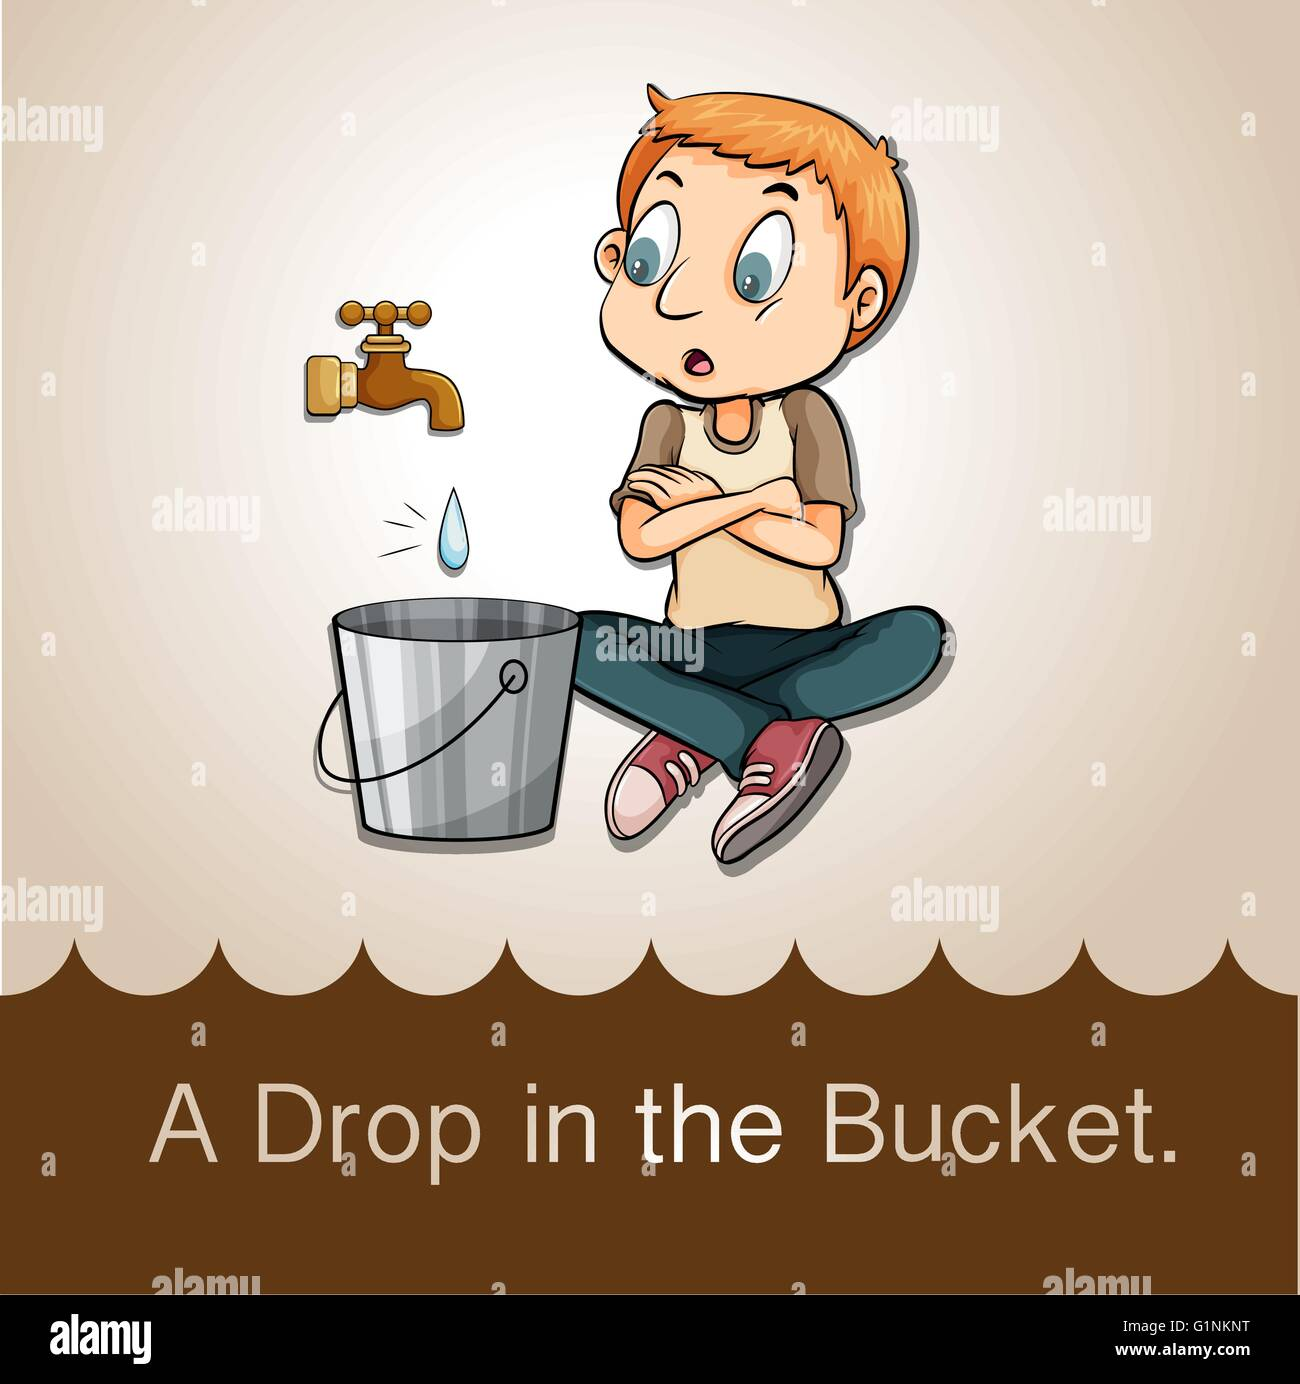 Idiom saying a drop in the bucket - Stock Image